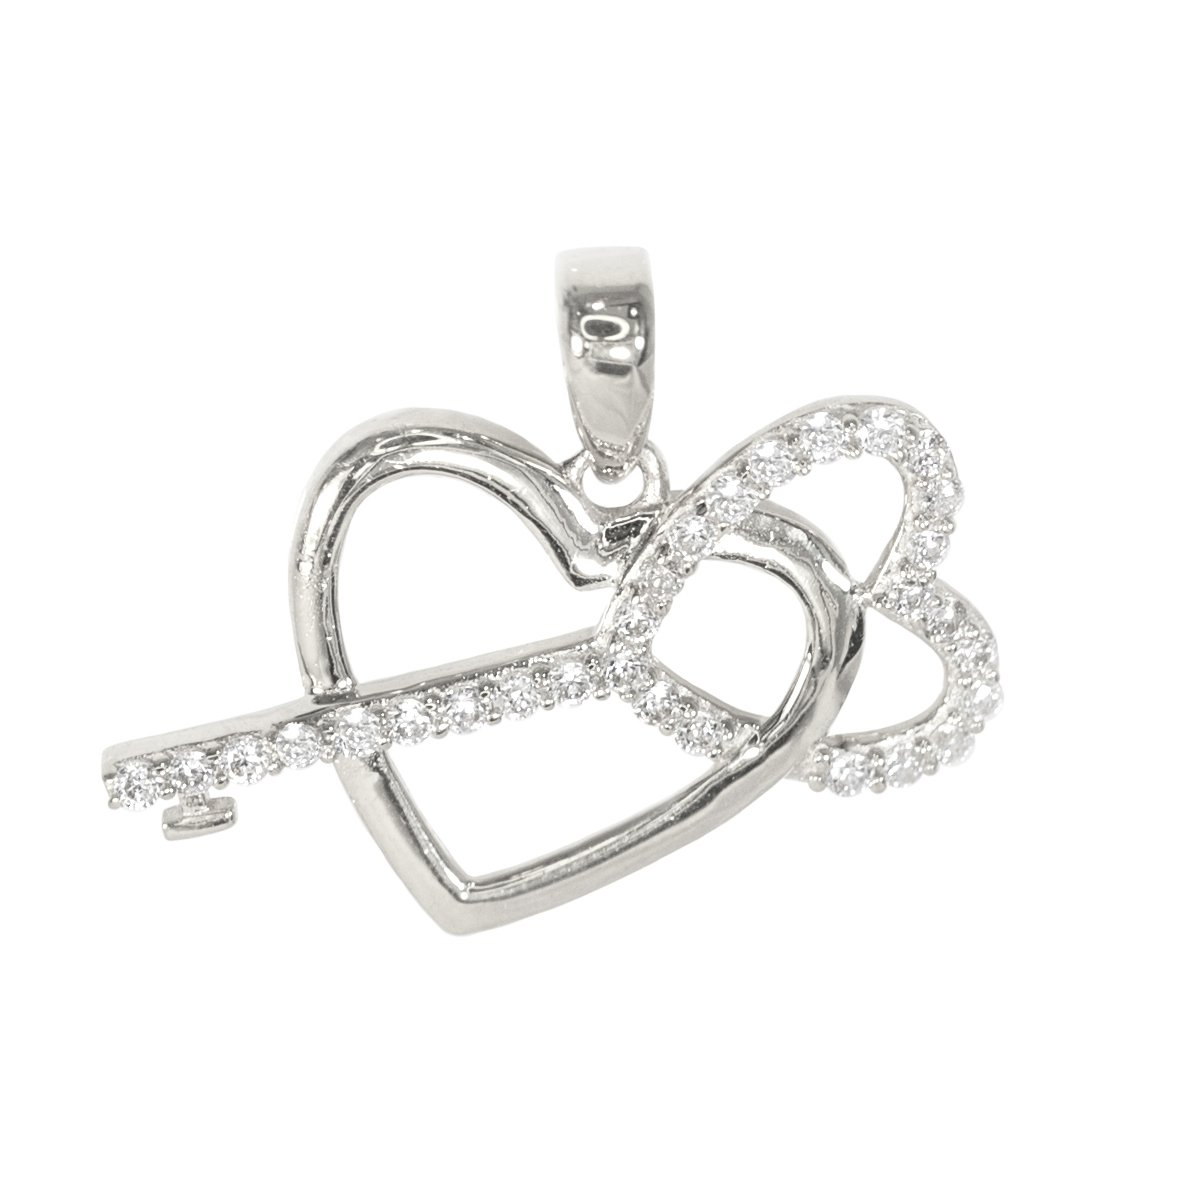 IcedJewels 0.55 cttw Round CZ 14K White Gold Key to my Heart Love Relationship Promise Choker Necklace Charm